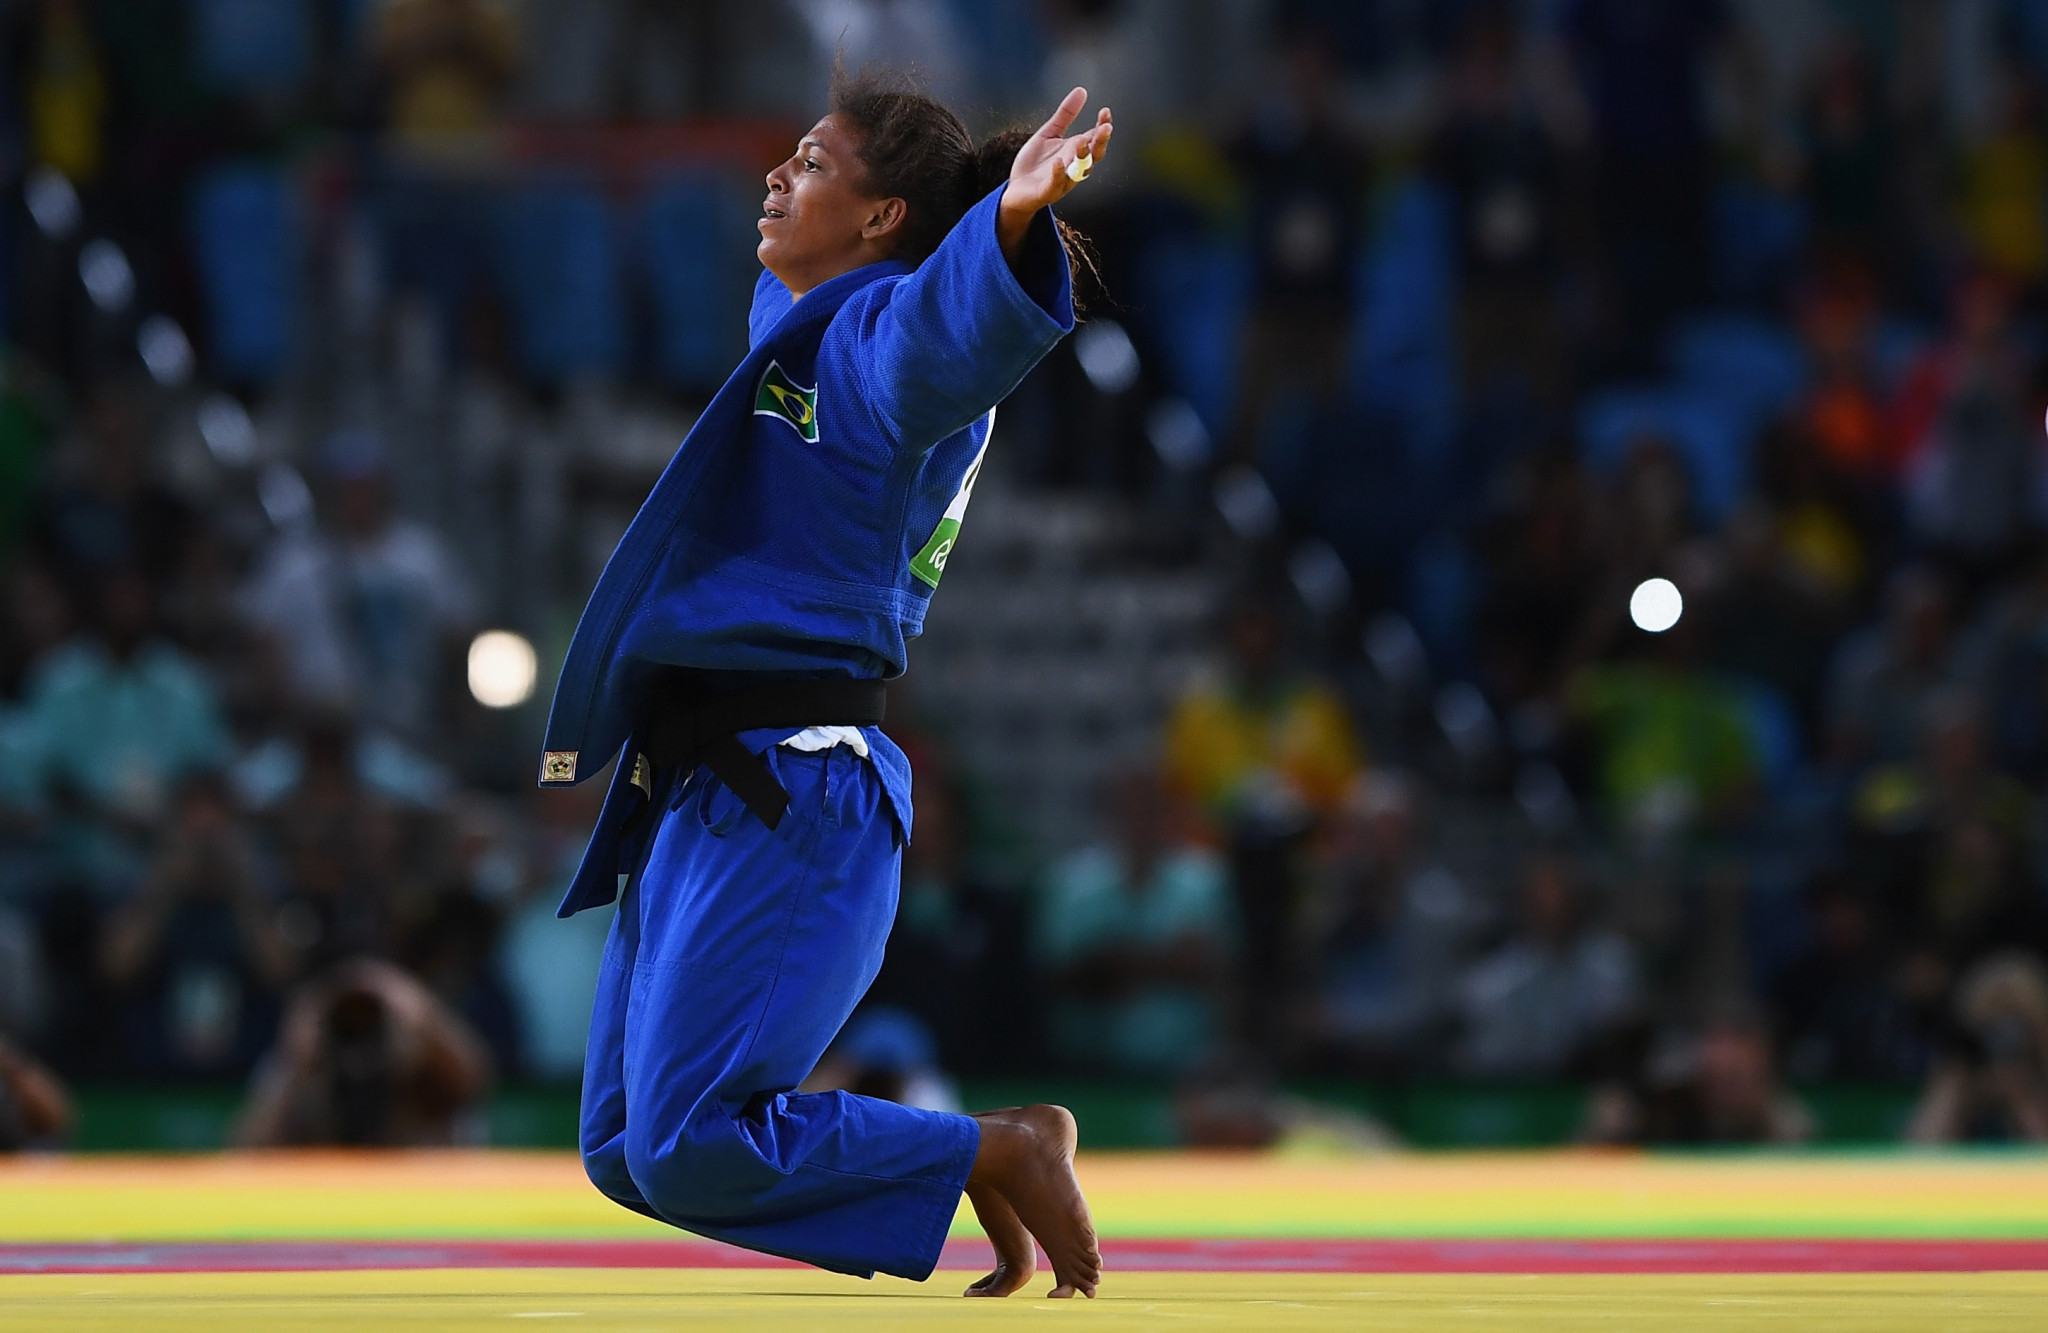 Olympic judo champion Silva to miss Tokyo 2020 after failing in bid to have two-year doping ban overturned